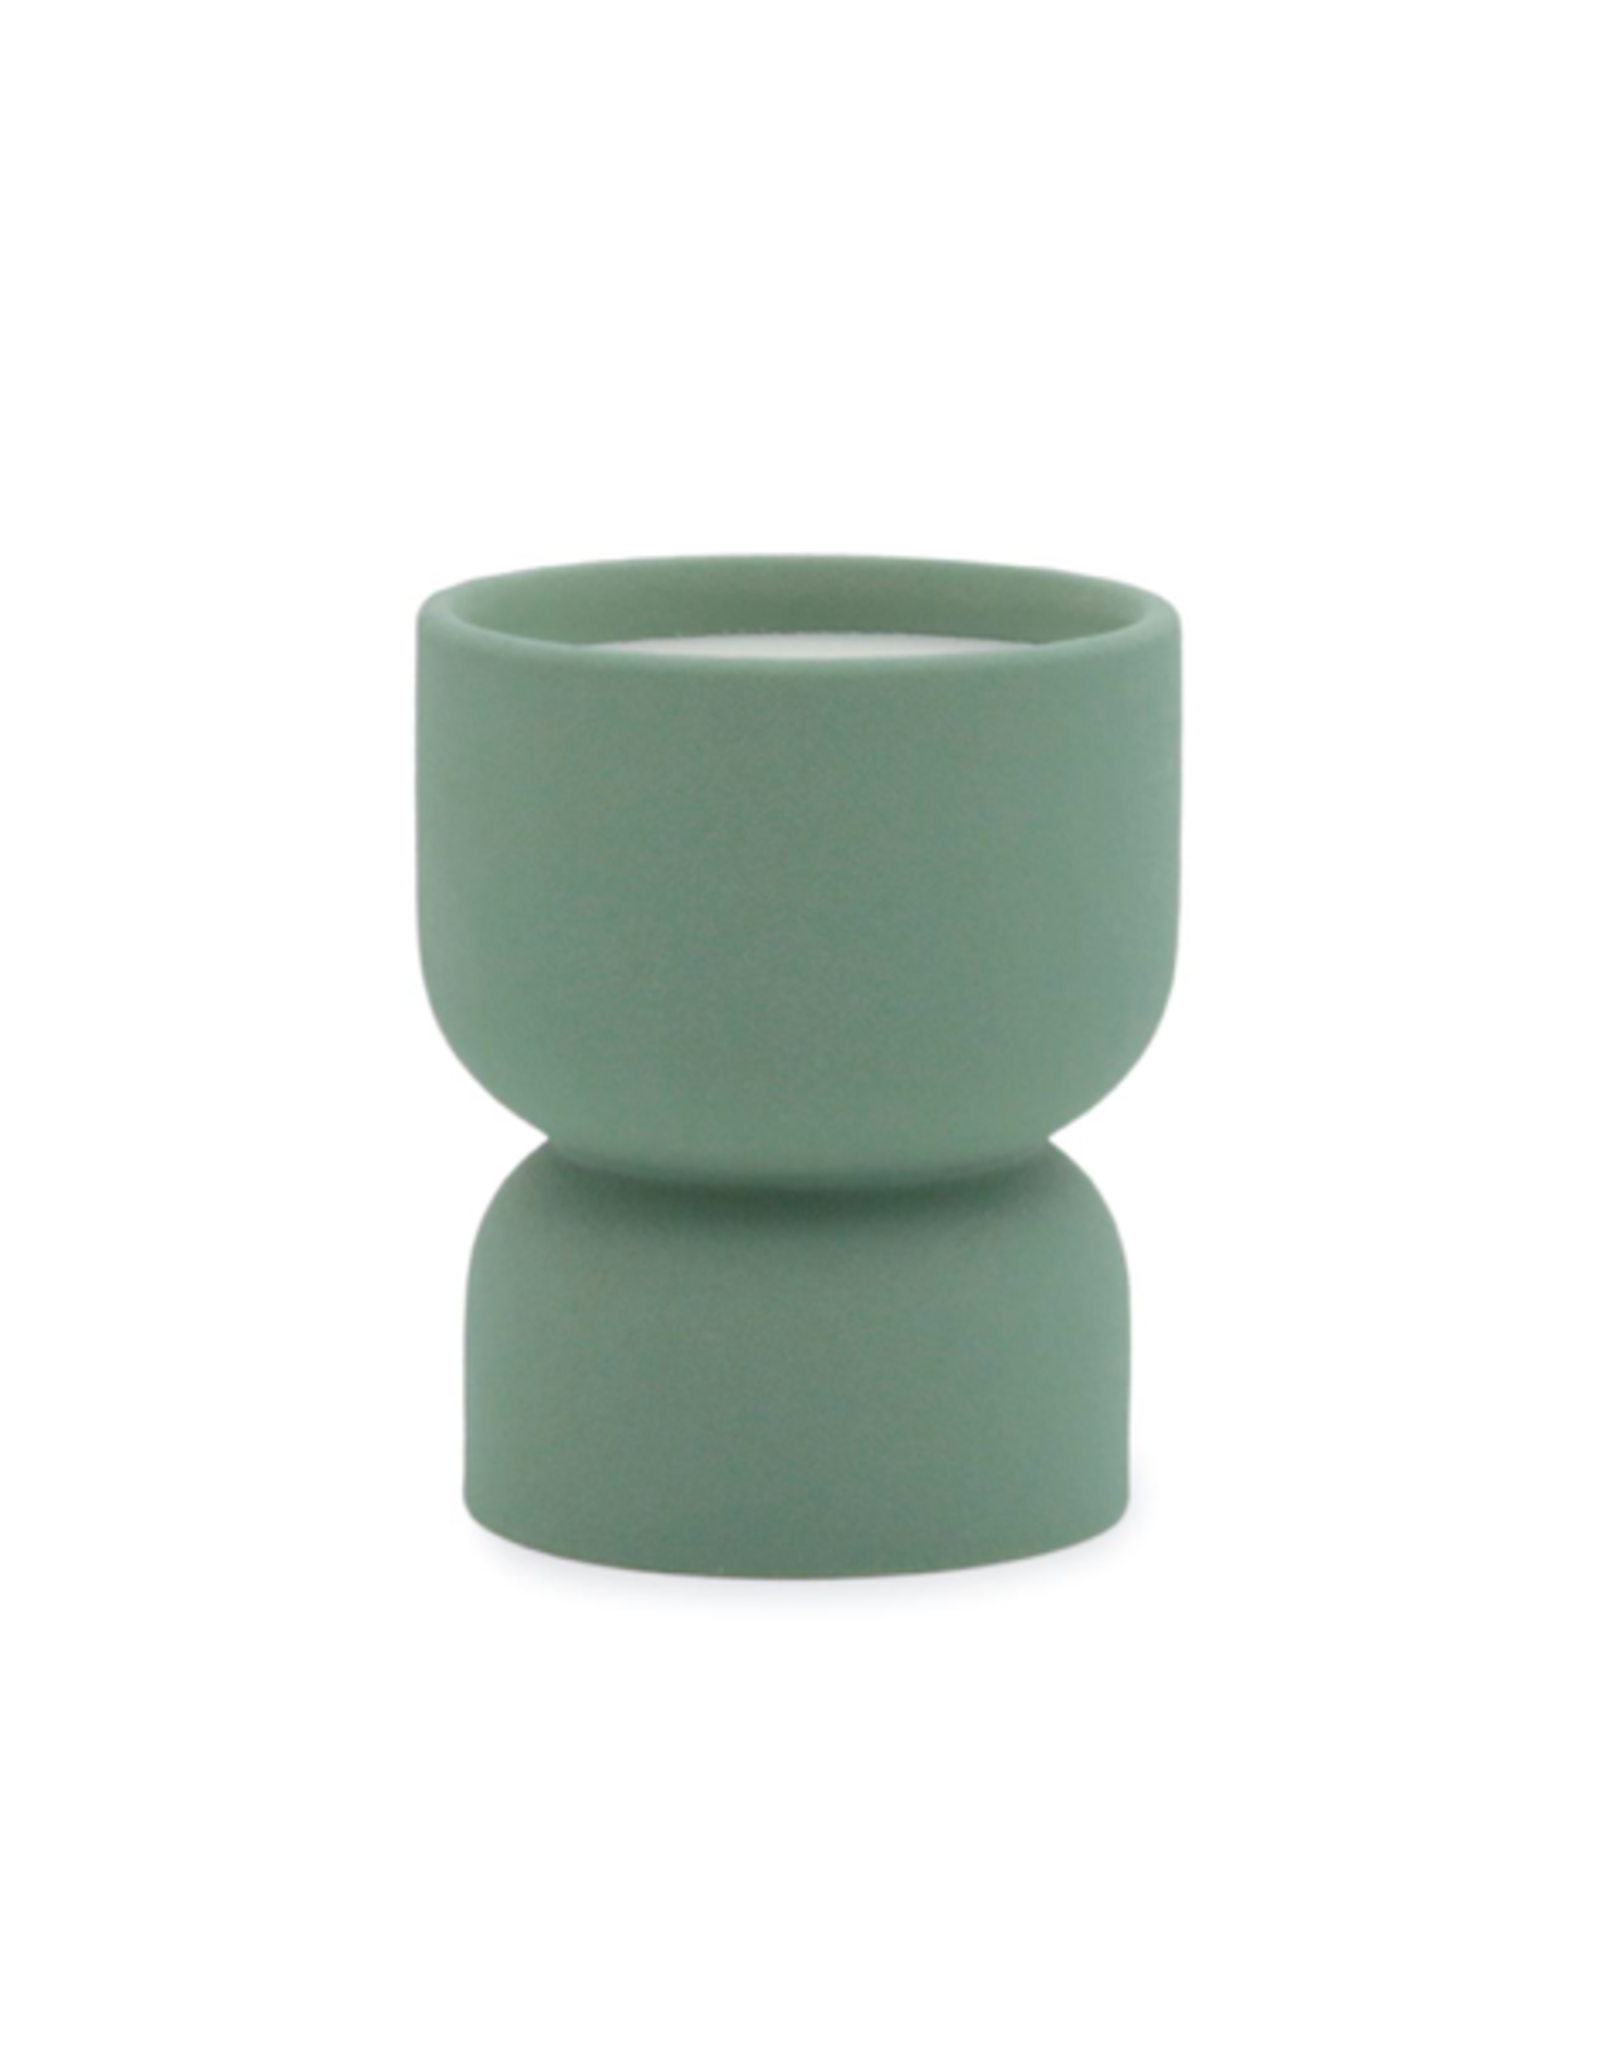 PAX - Soy Candle/Spanish Moss, Ceramic, 6oz